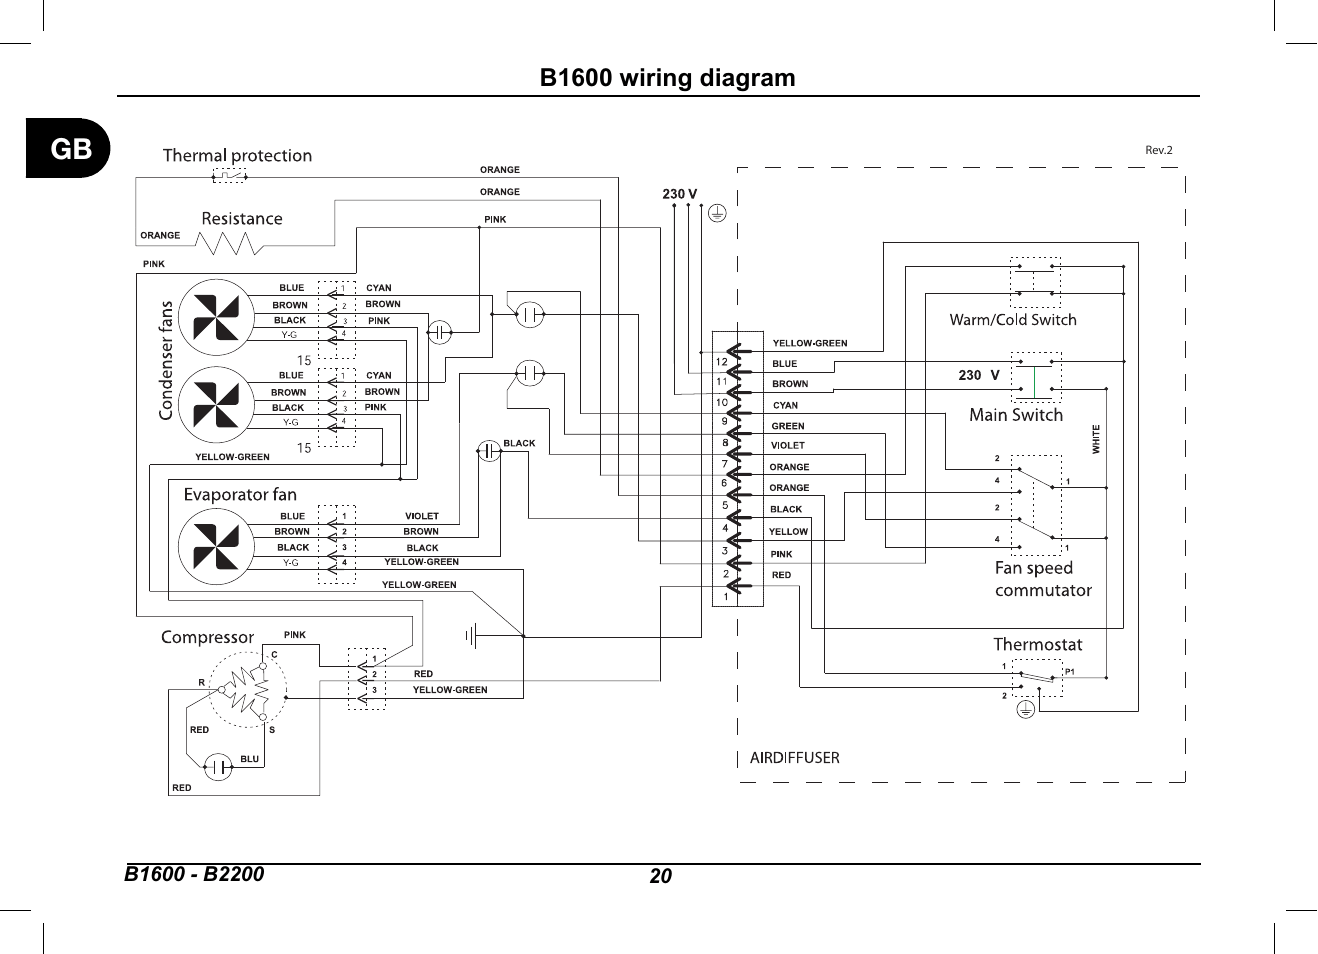 [DIAGRAM] Mazda B1600 Wiring Diagram FULL Version HD